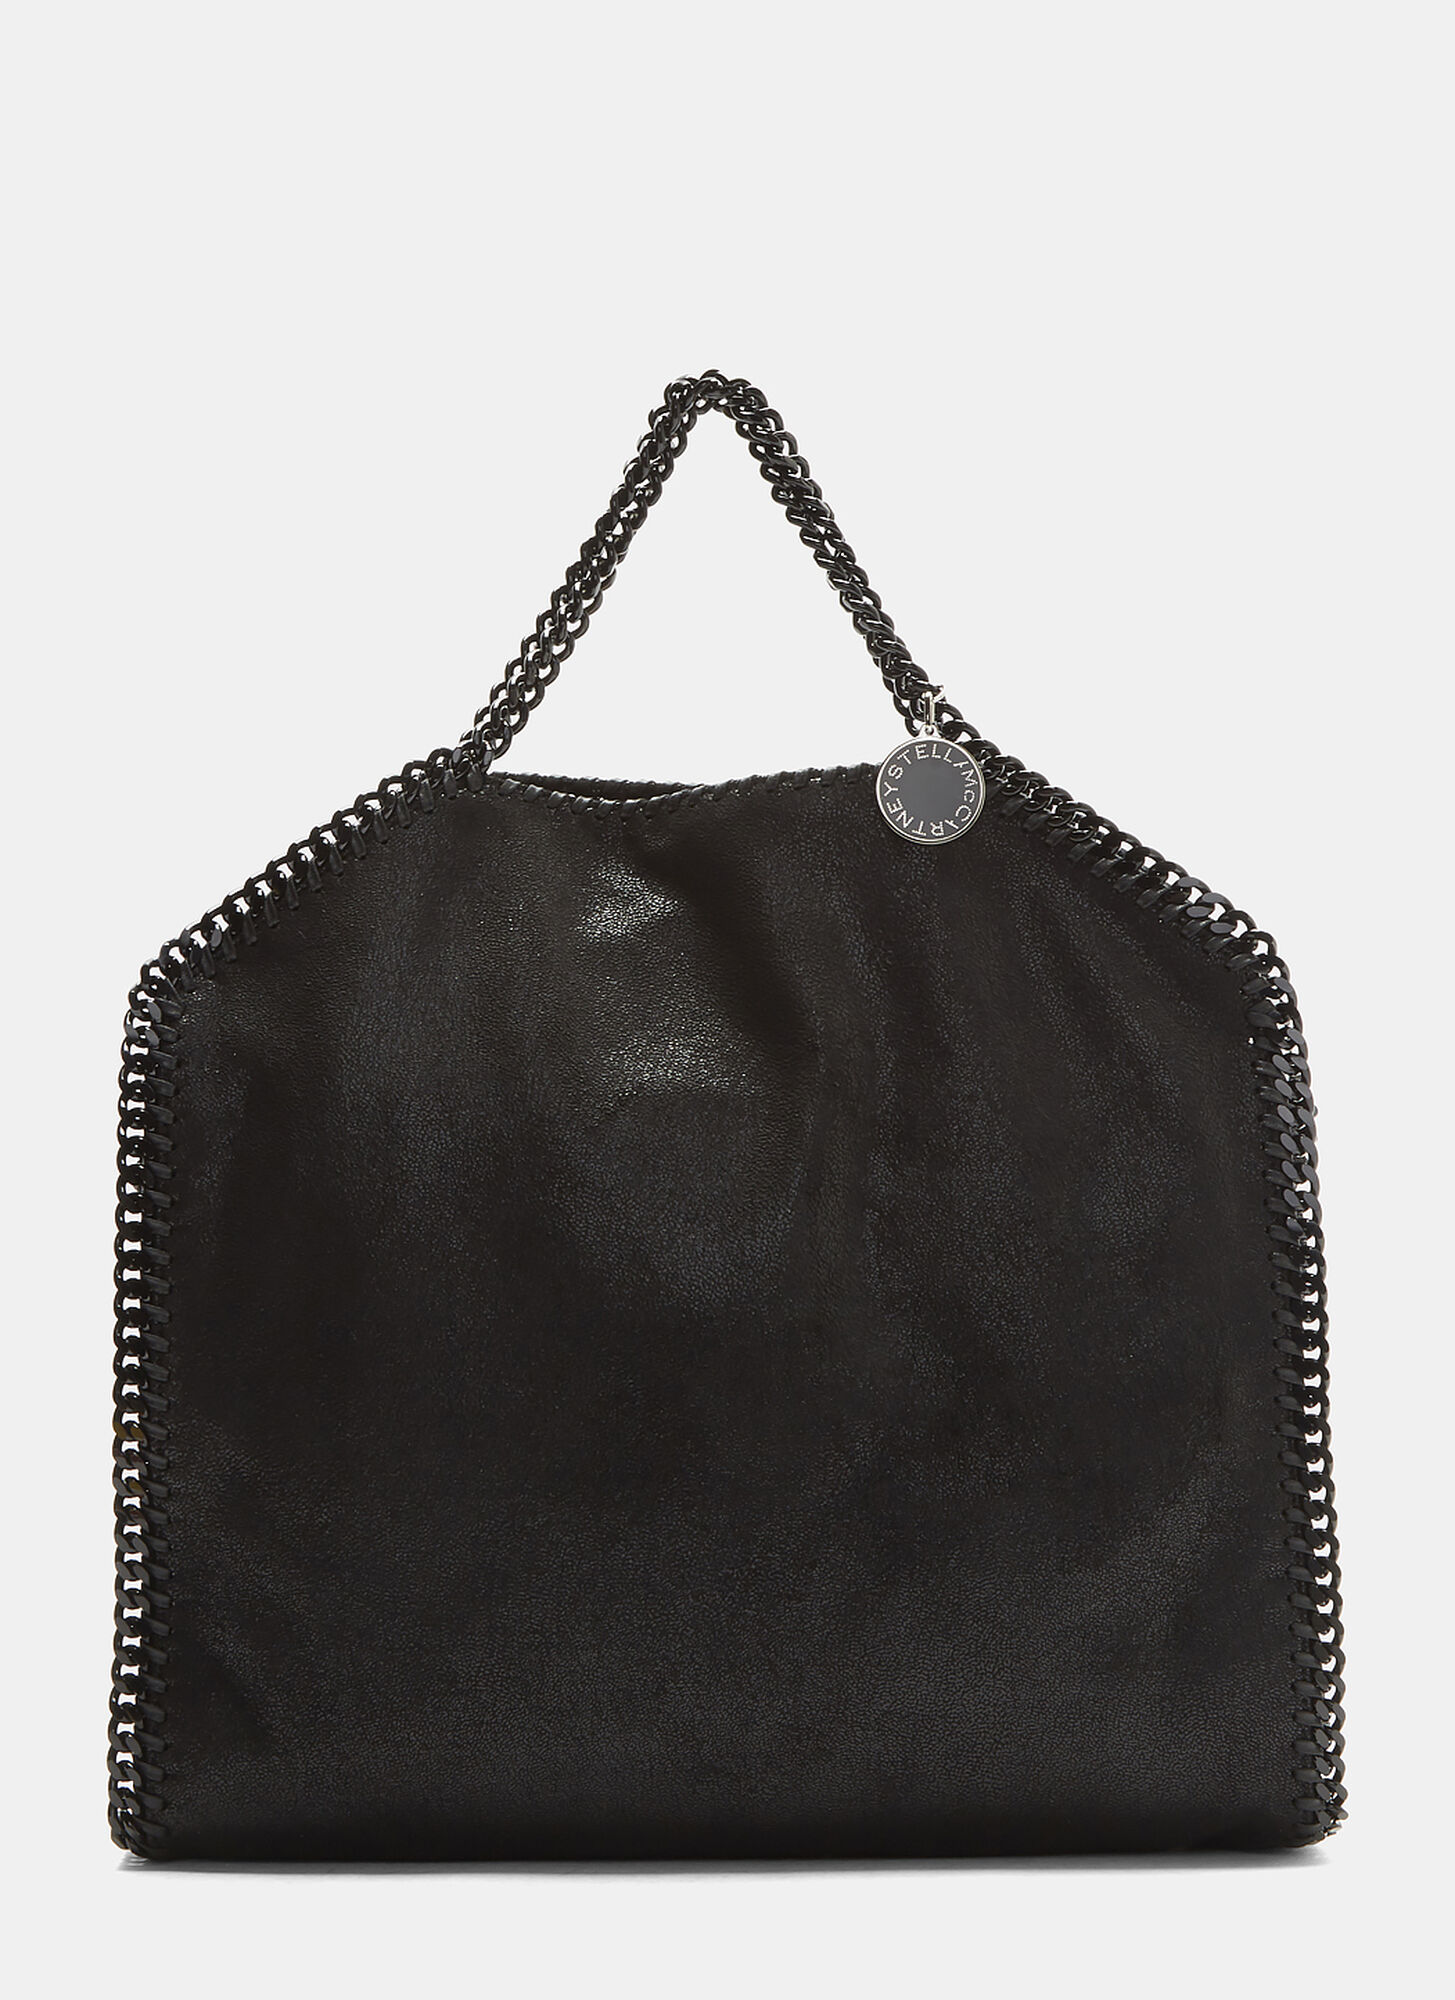 Stella McCartney Small Falabella Chain Tote Bag in Black